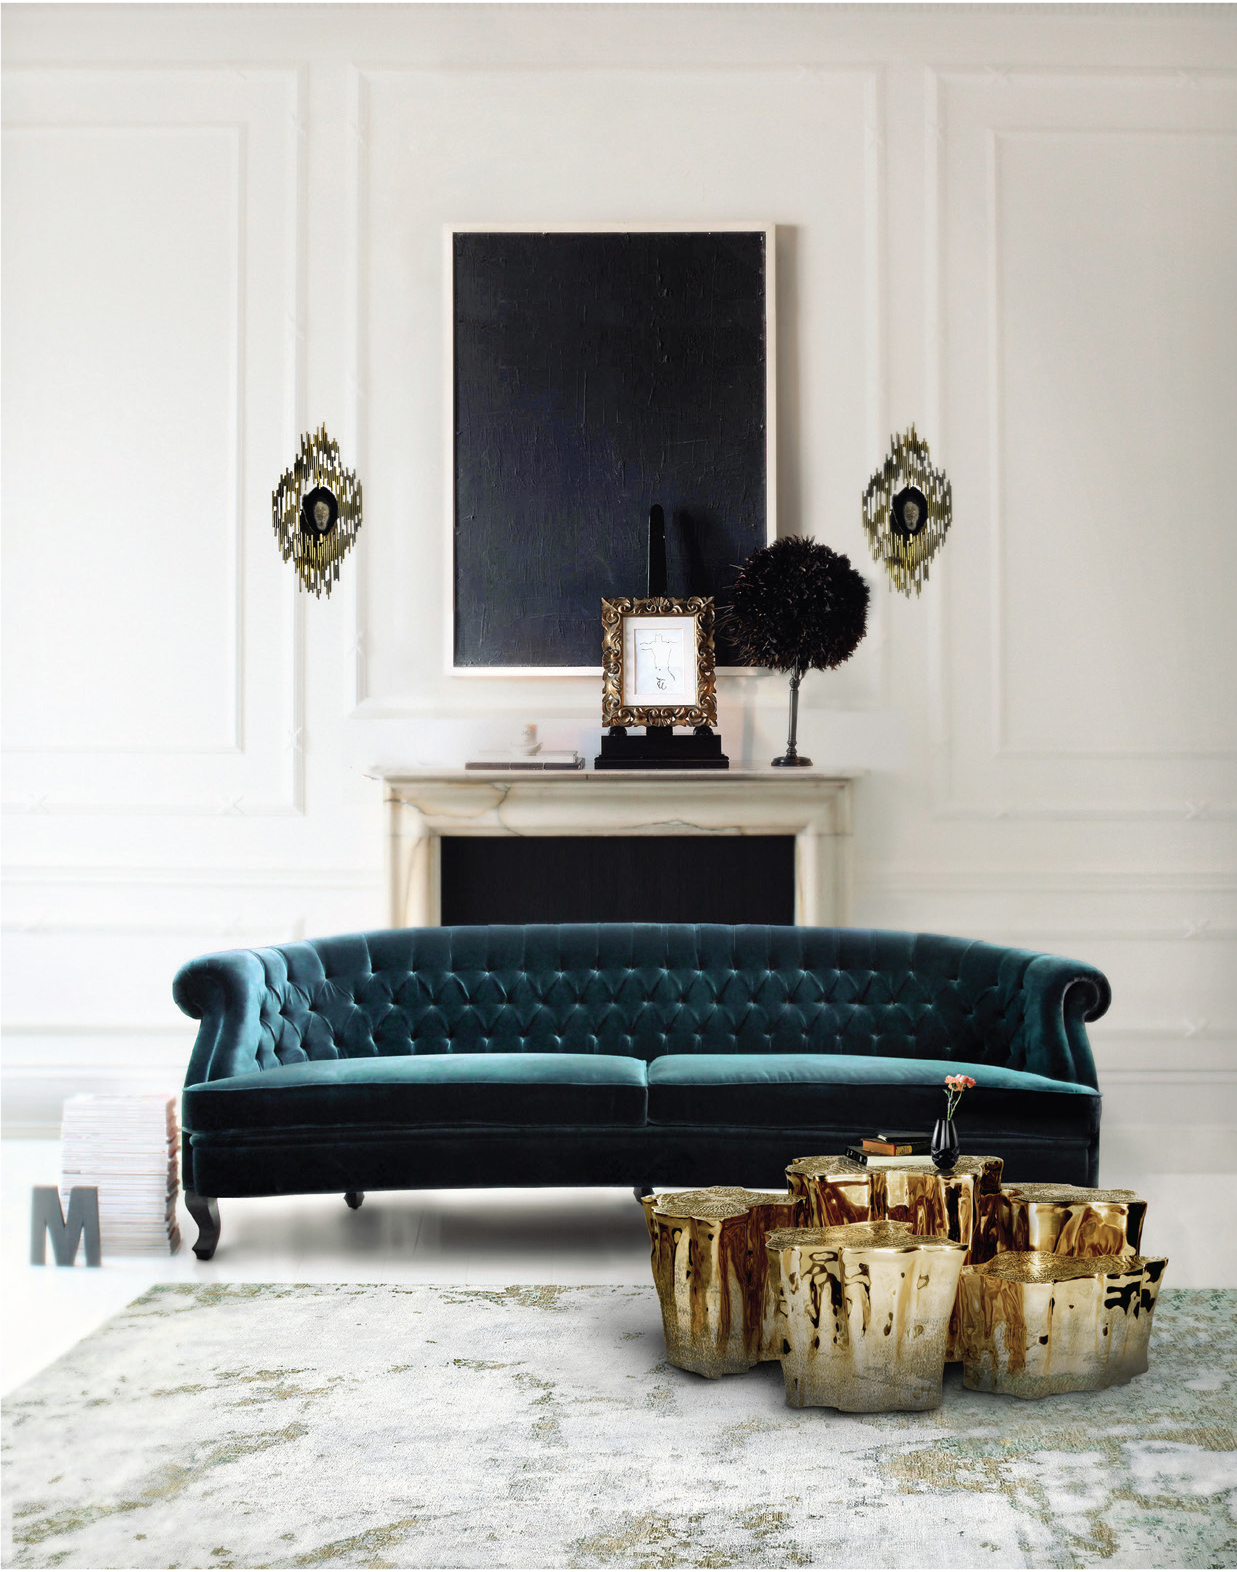 Design inspiration for the luxurious modern classic living room